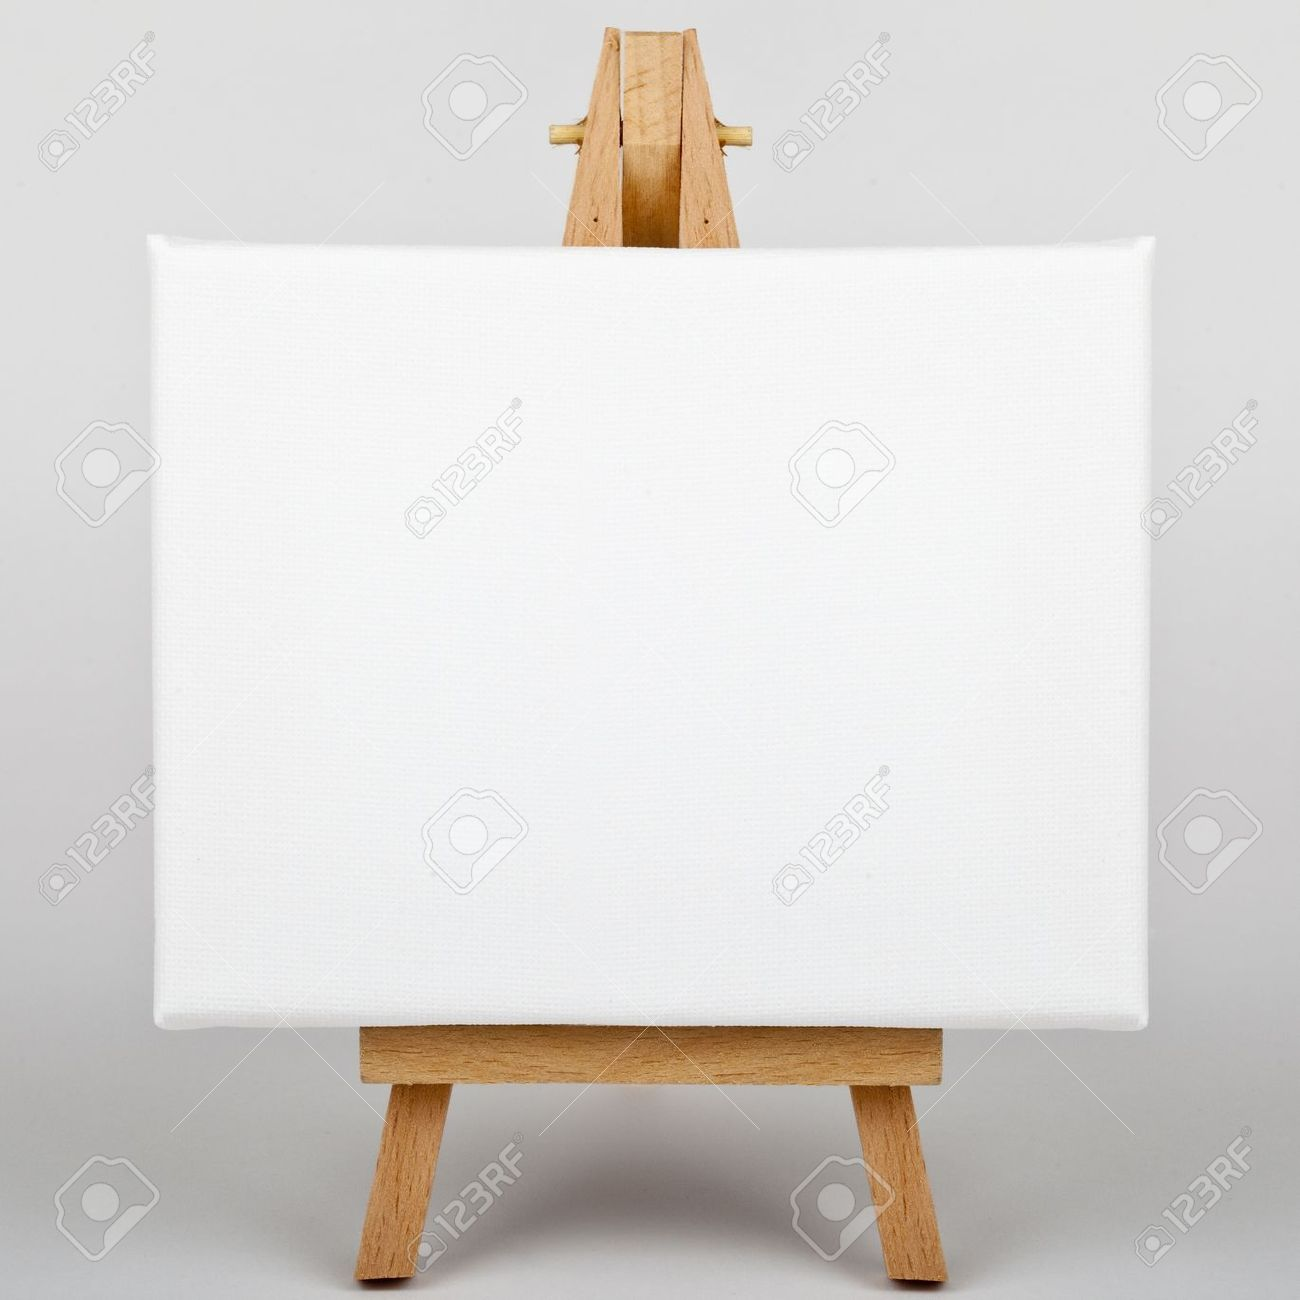 a white canvas on